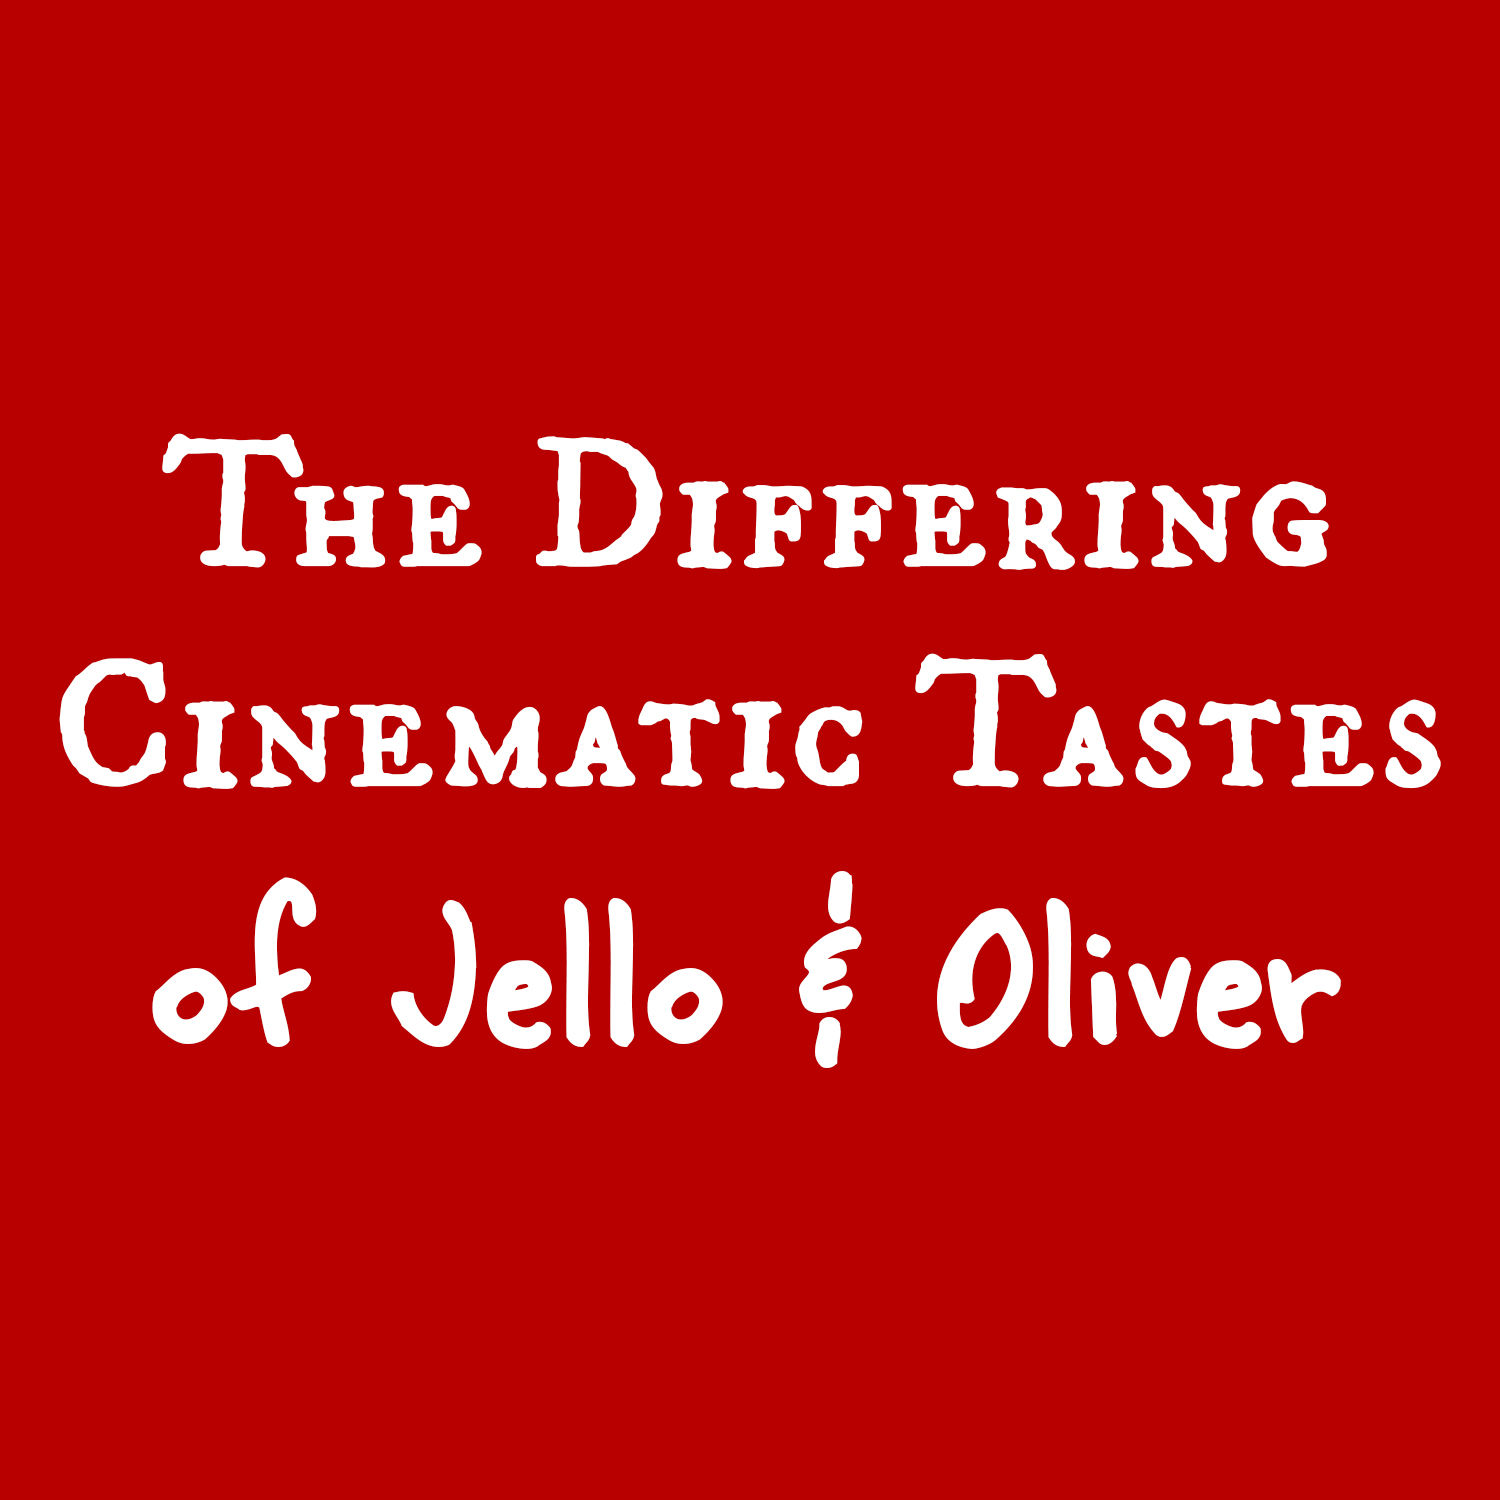 The Differing Cinematic Tastes of Jello & Oliver